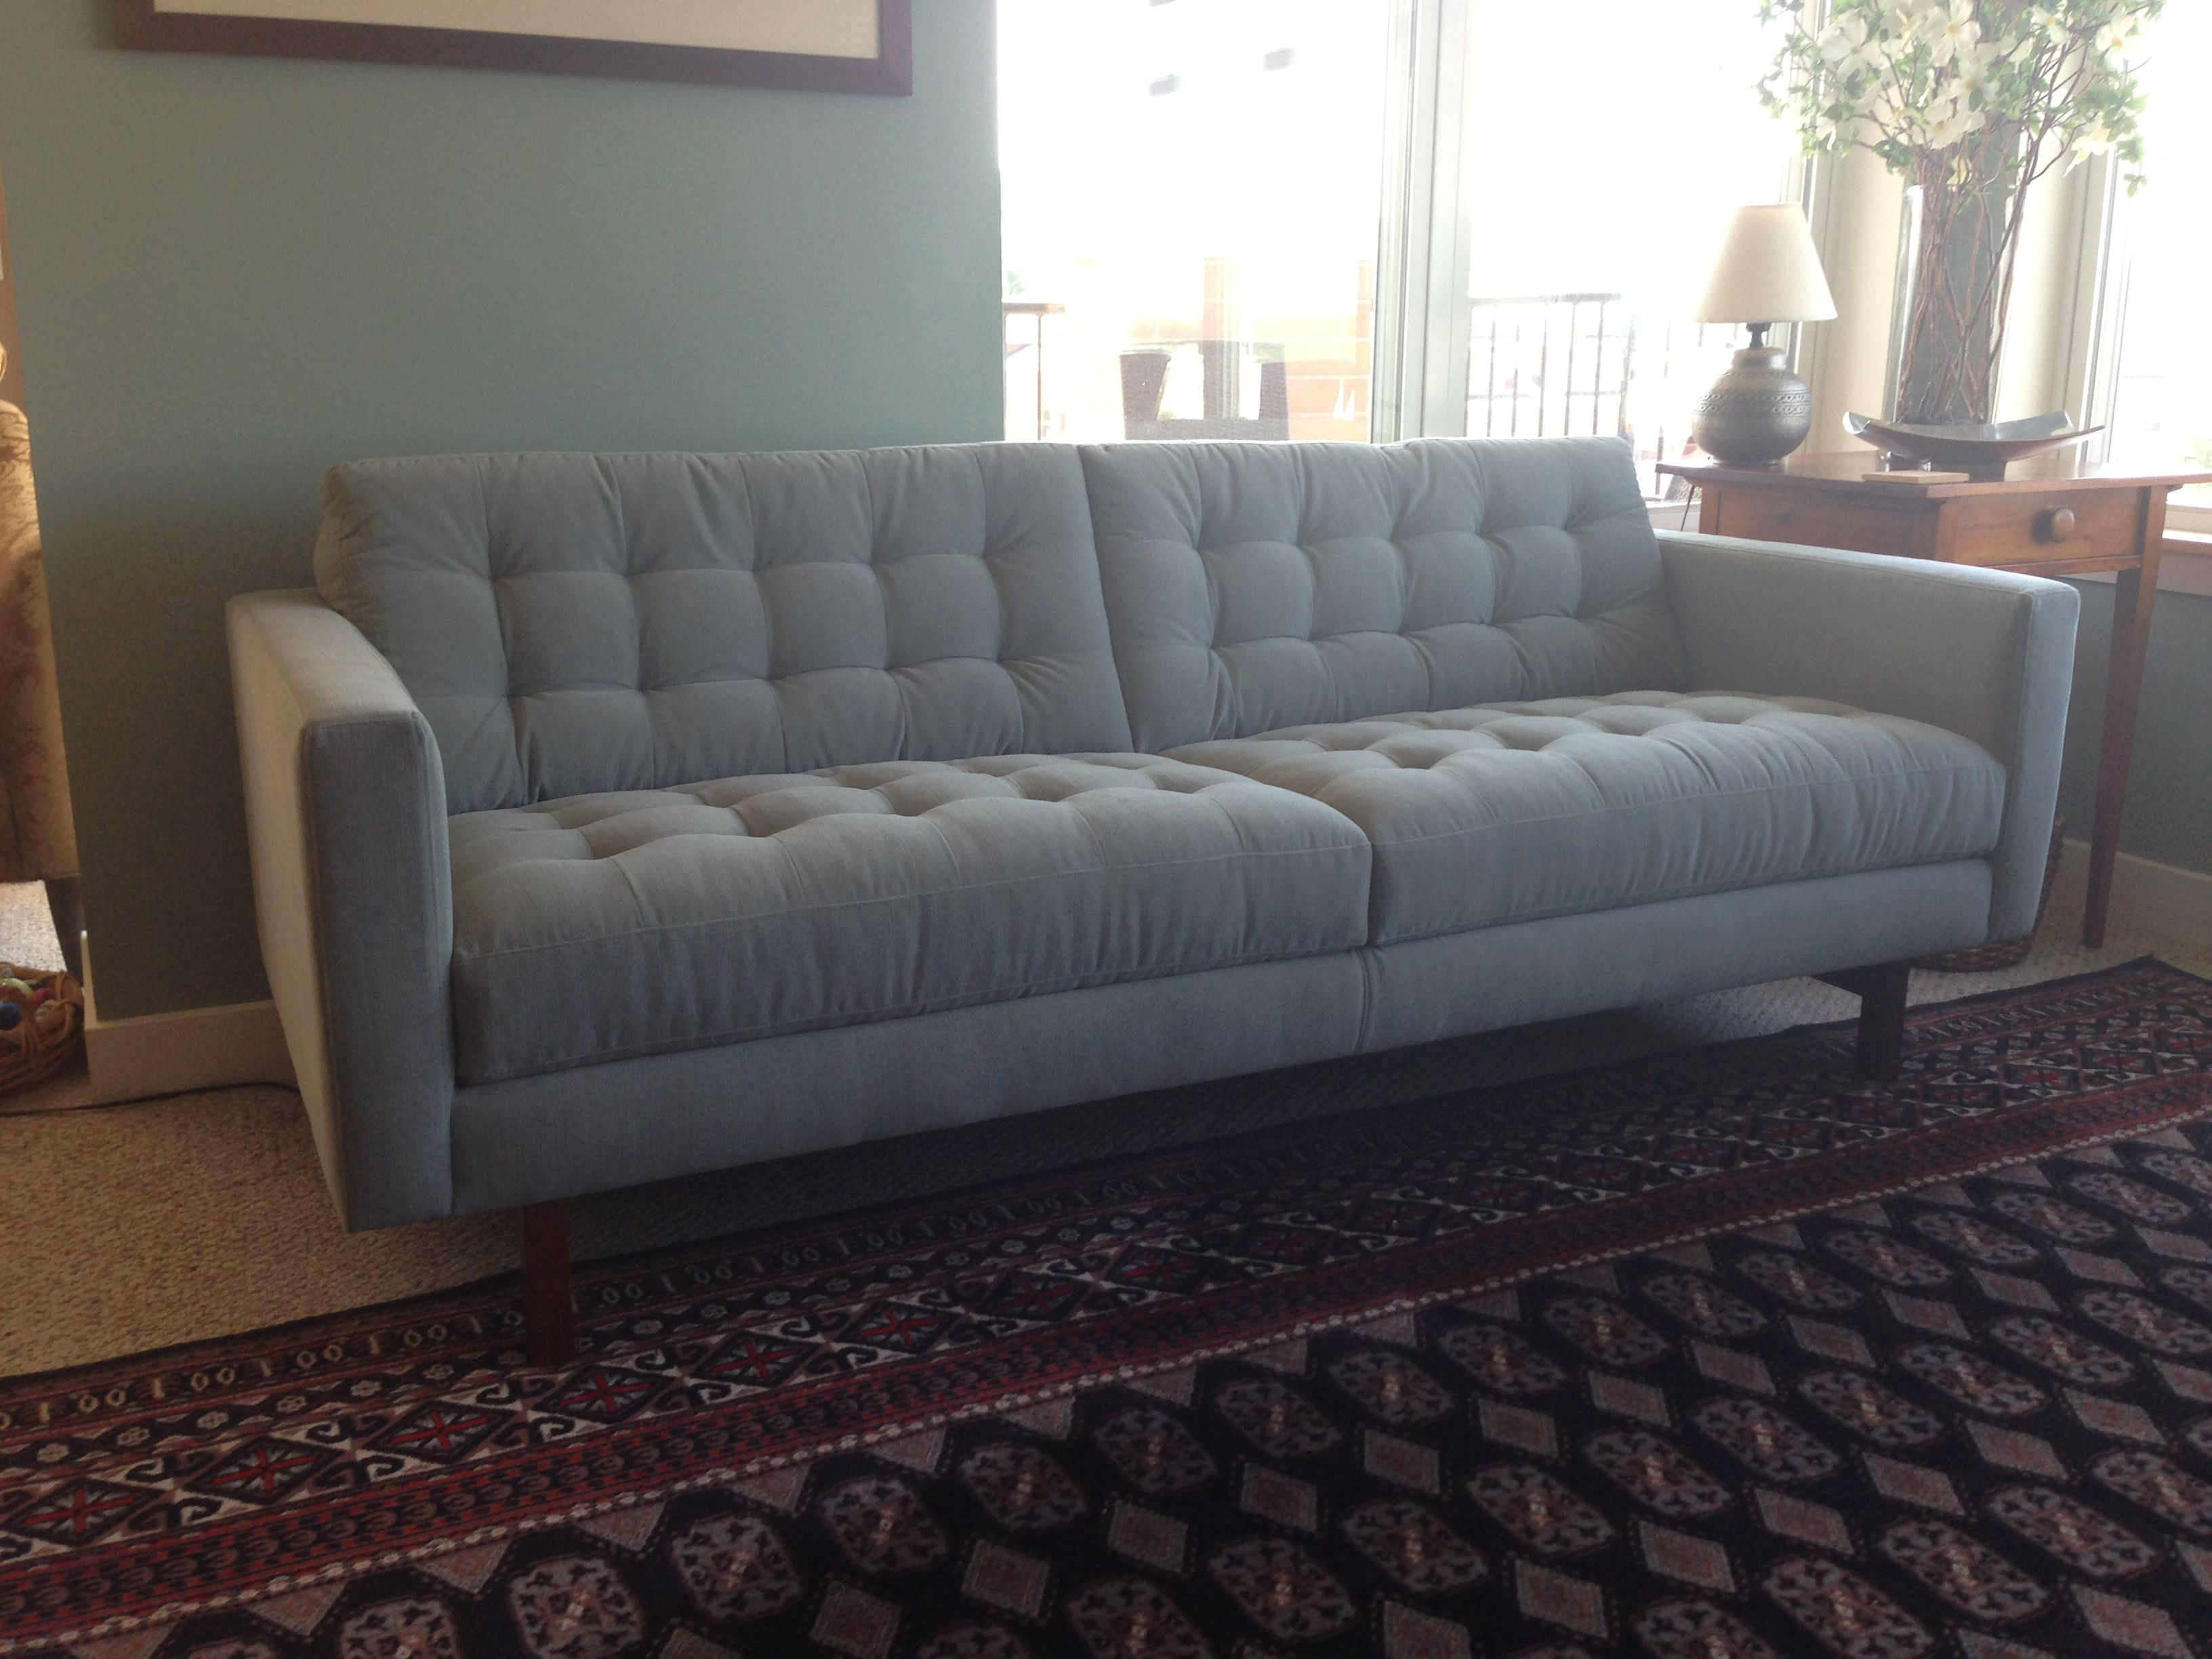 Our New American Leather Sofa, The Parker In Mineral, Just Arrived. Love It